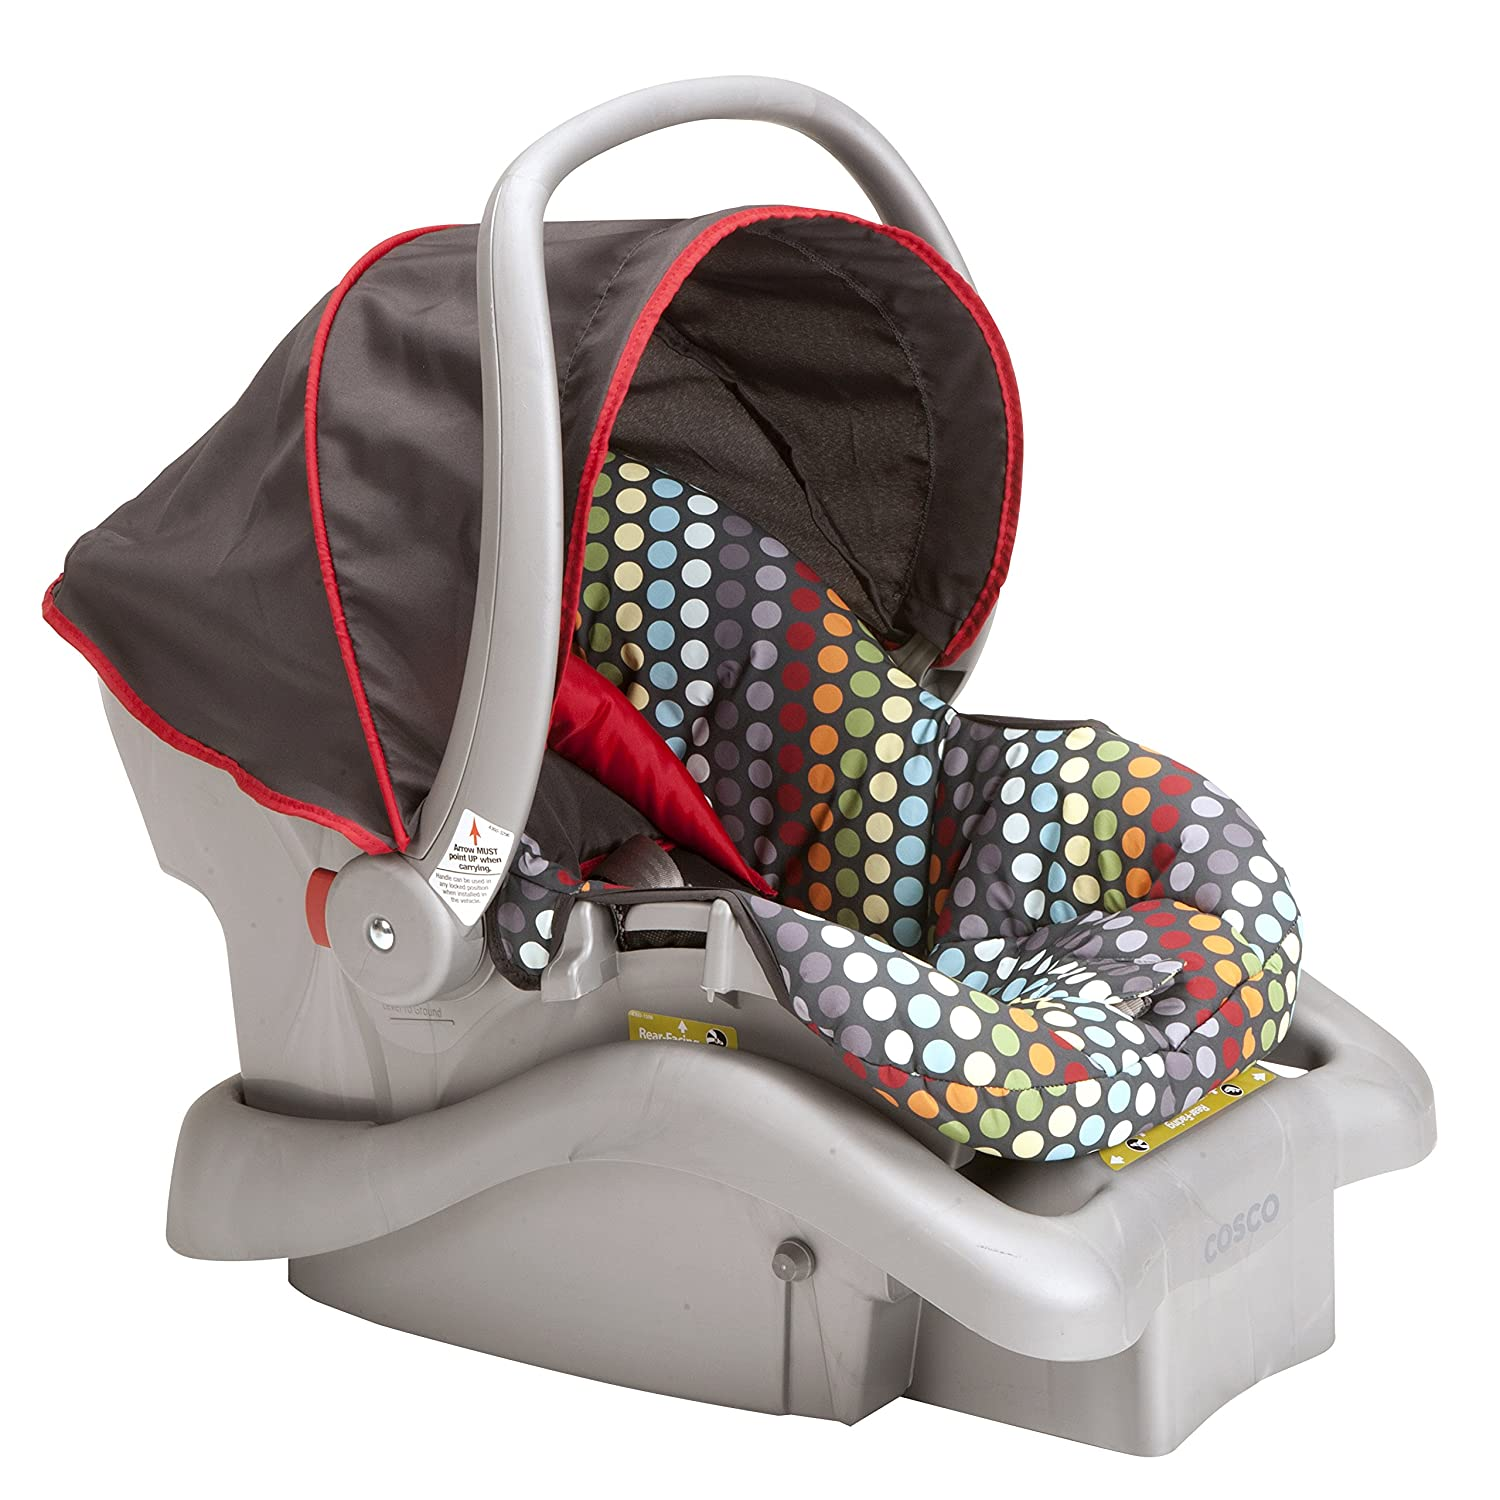 Amazon.com : Cosco Light N Comfy Dx, Rainbow Dots : Baby